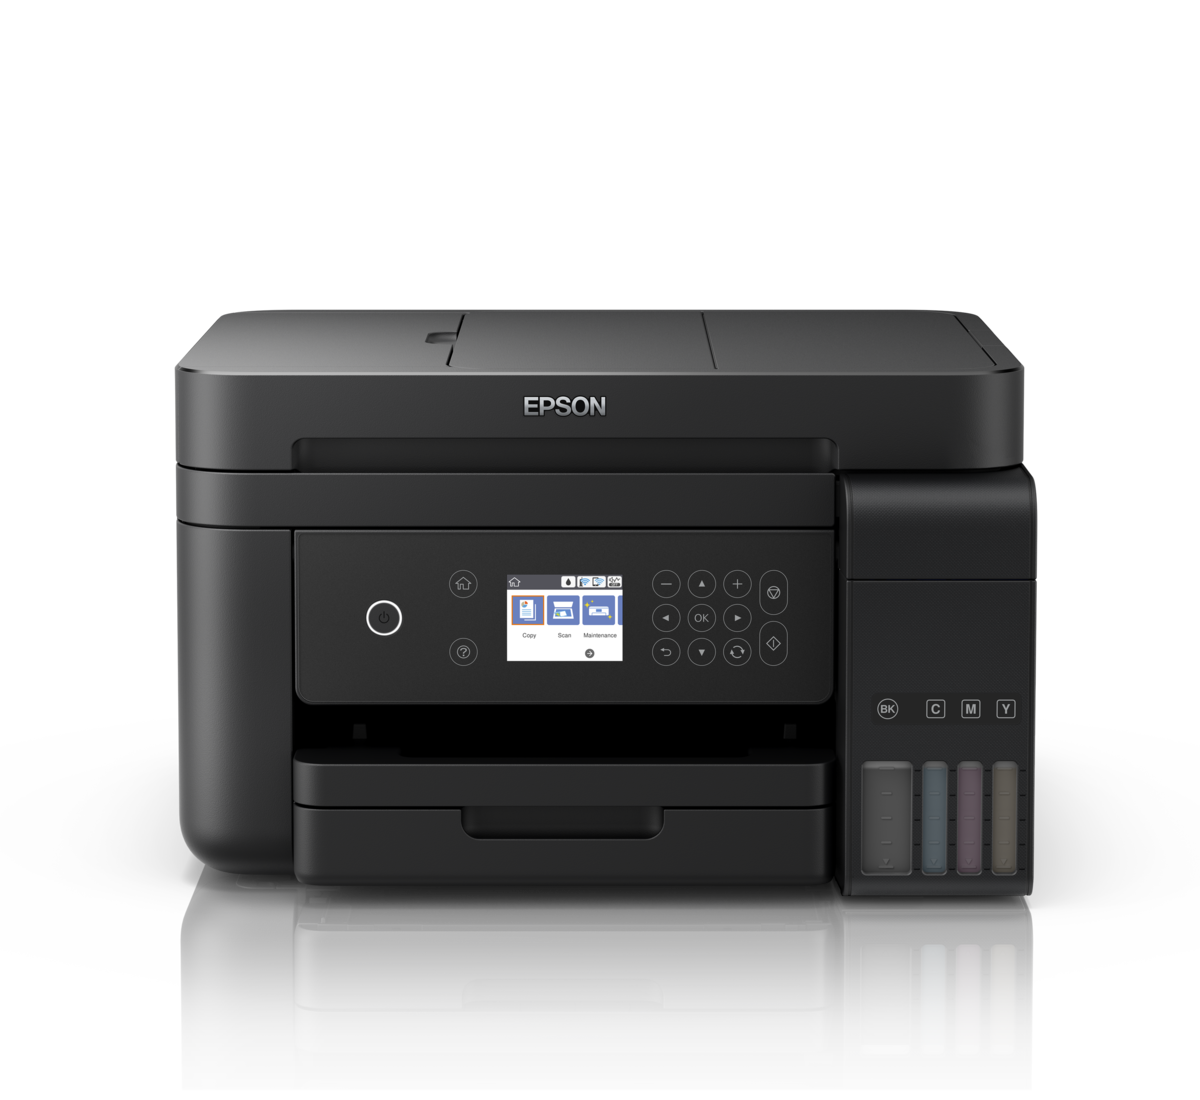 Epson L6170 Wi-Fi Duplex All-in-One Ink Tank Printer with